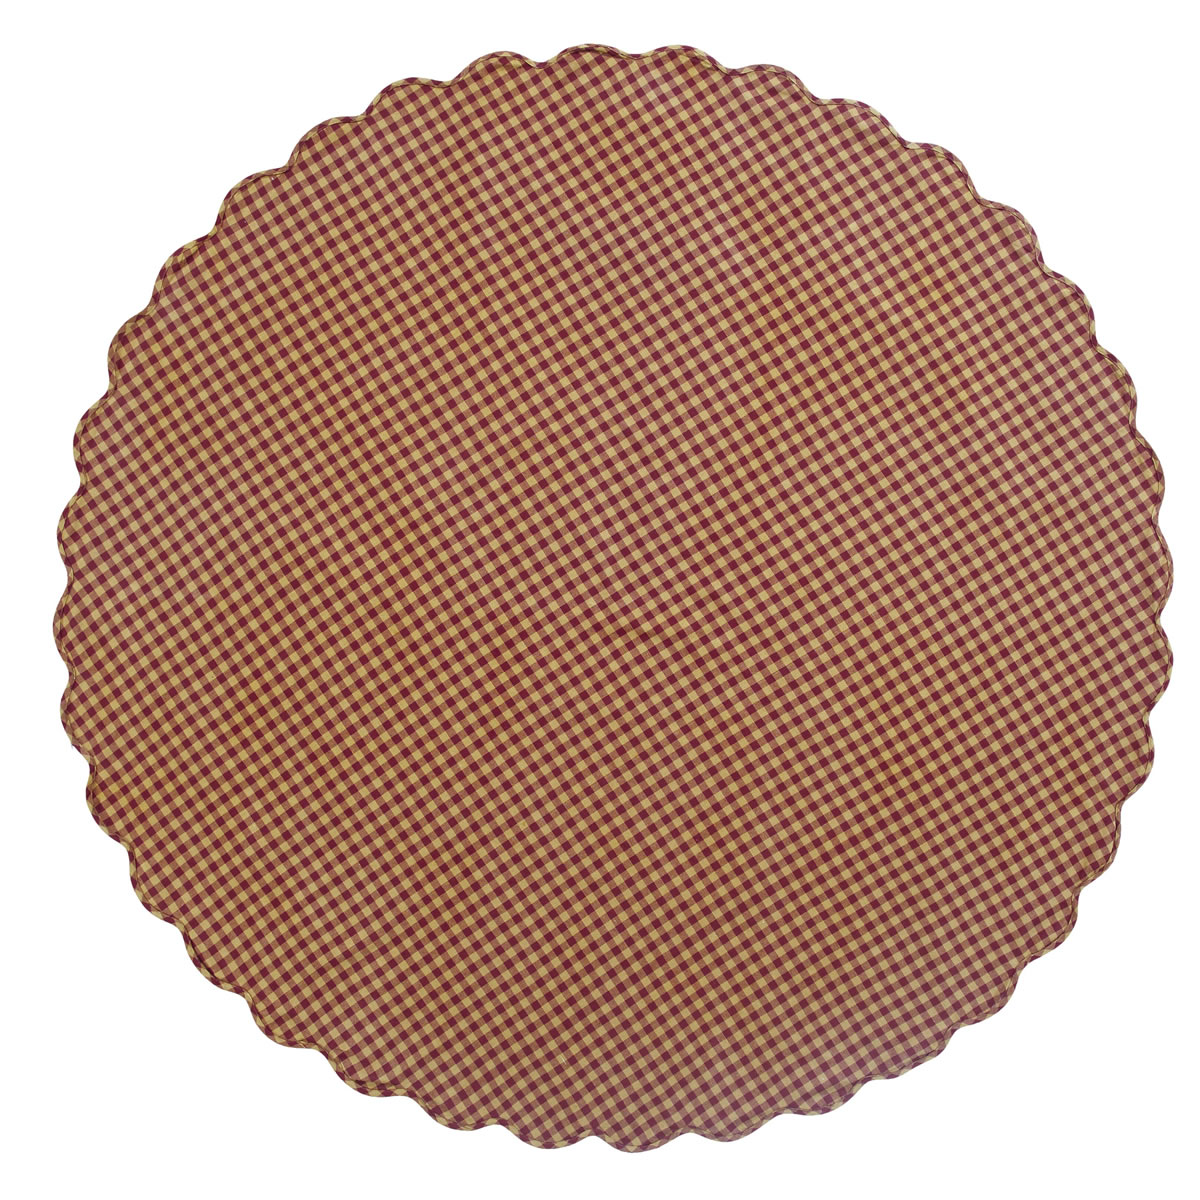 "BURGUNDY CHECK Scalloped Table Cloth - 70"" Round - Burgundy/Tan - VHC Brands"